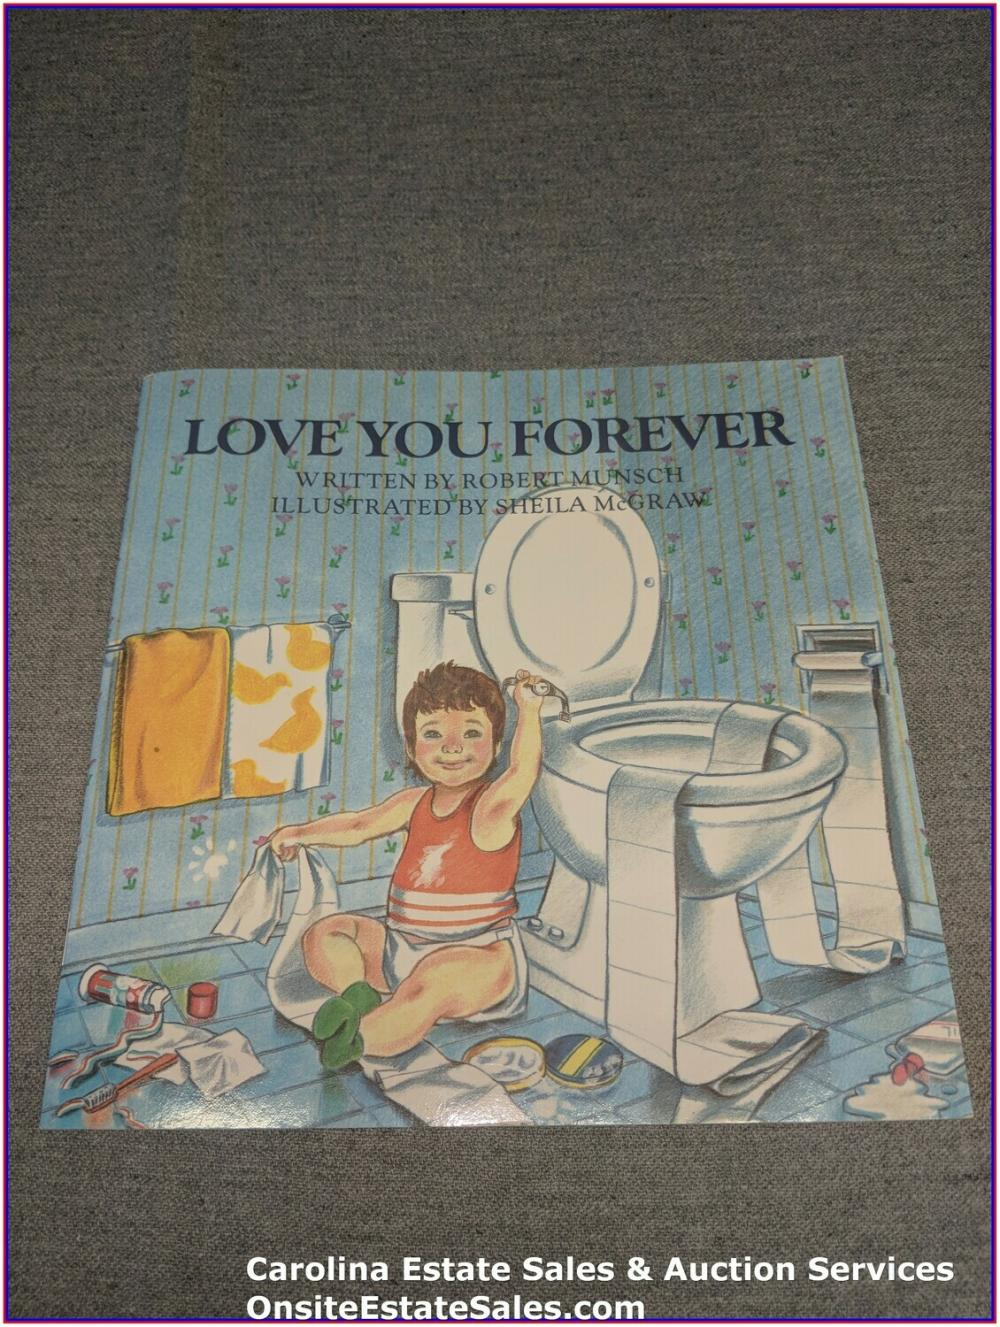 Love You Forever - Fire Fly Book